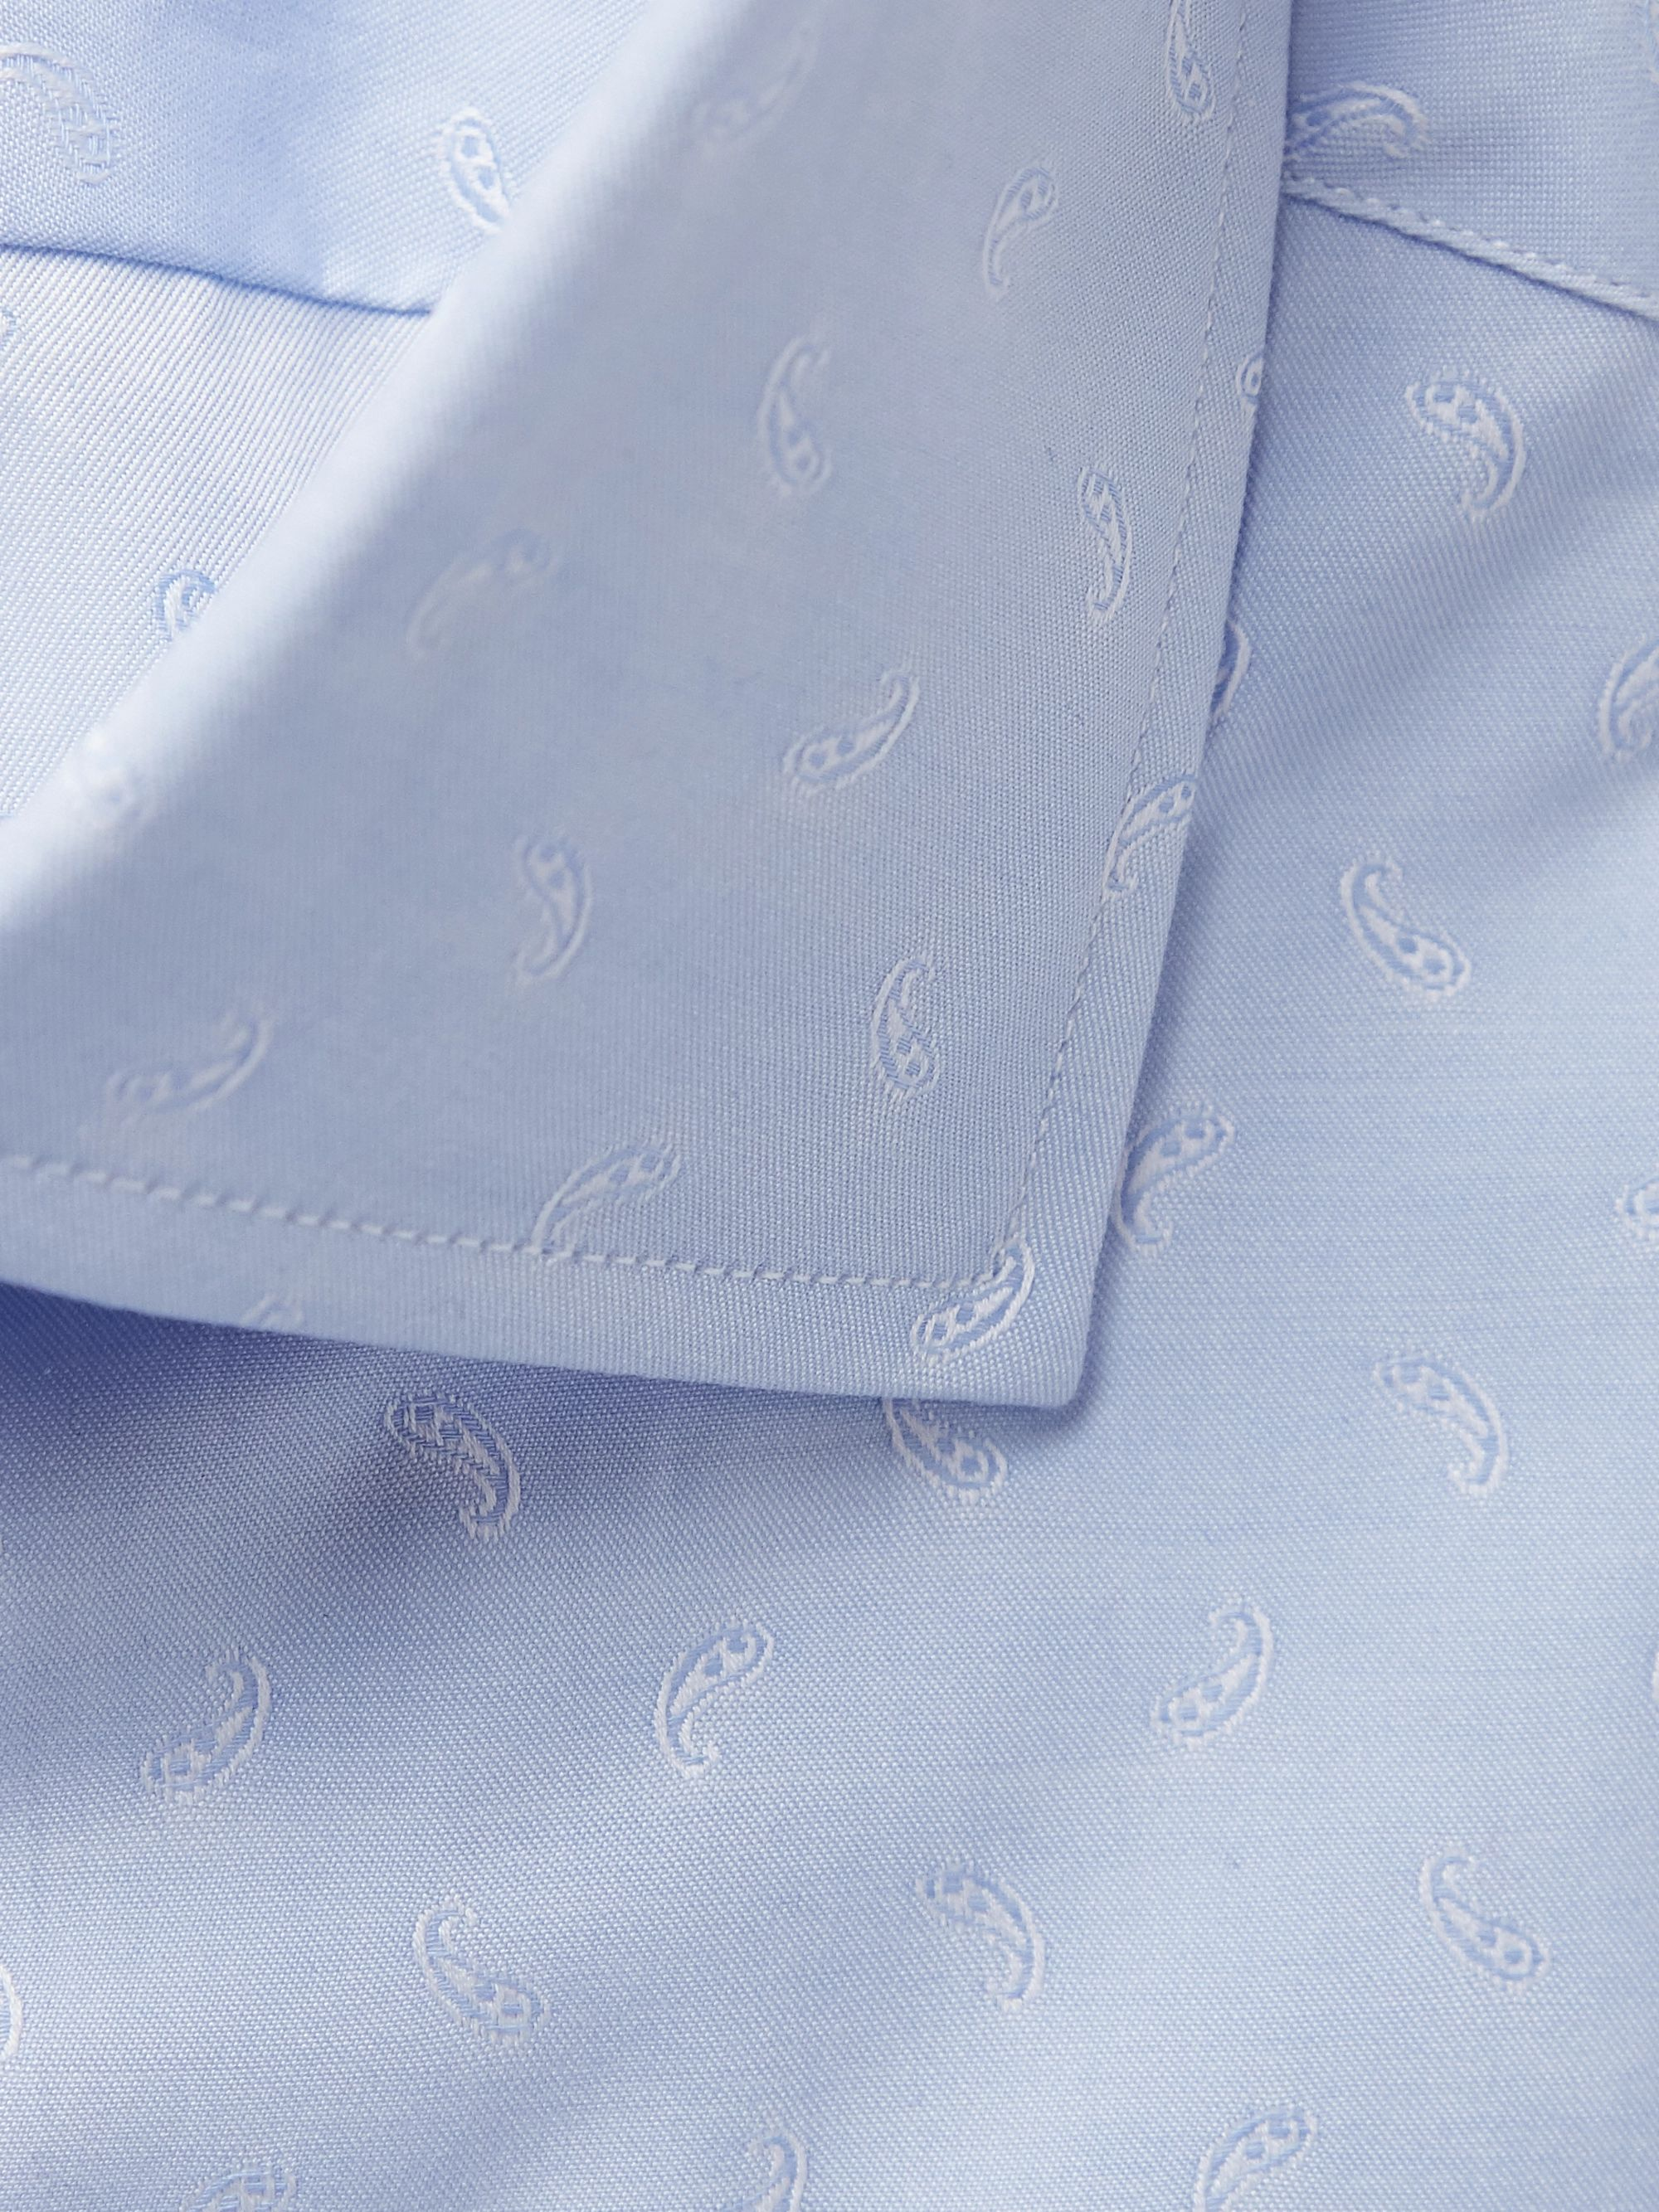 Etro Light-Blue Slim-Fit Paisley-Print Cotton-Poplin Shirt